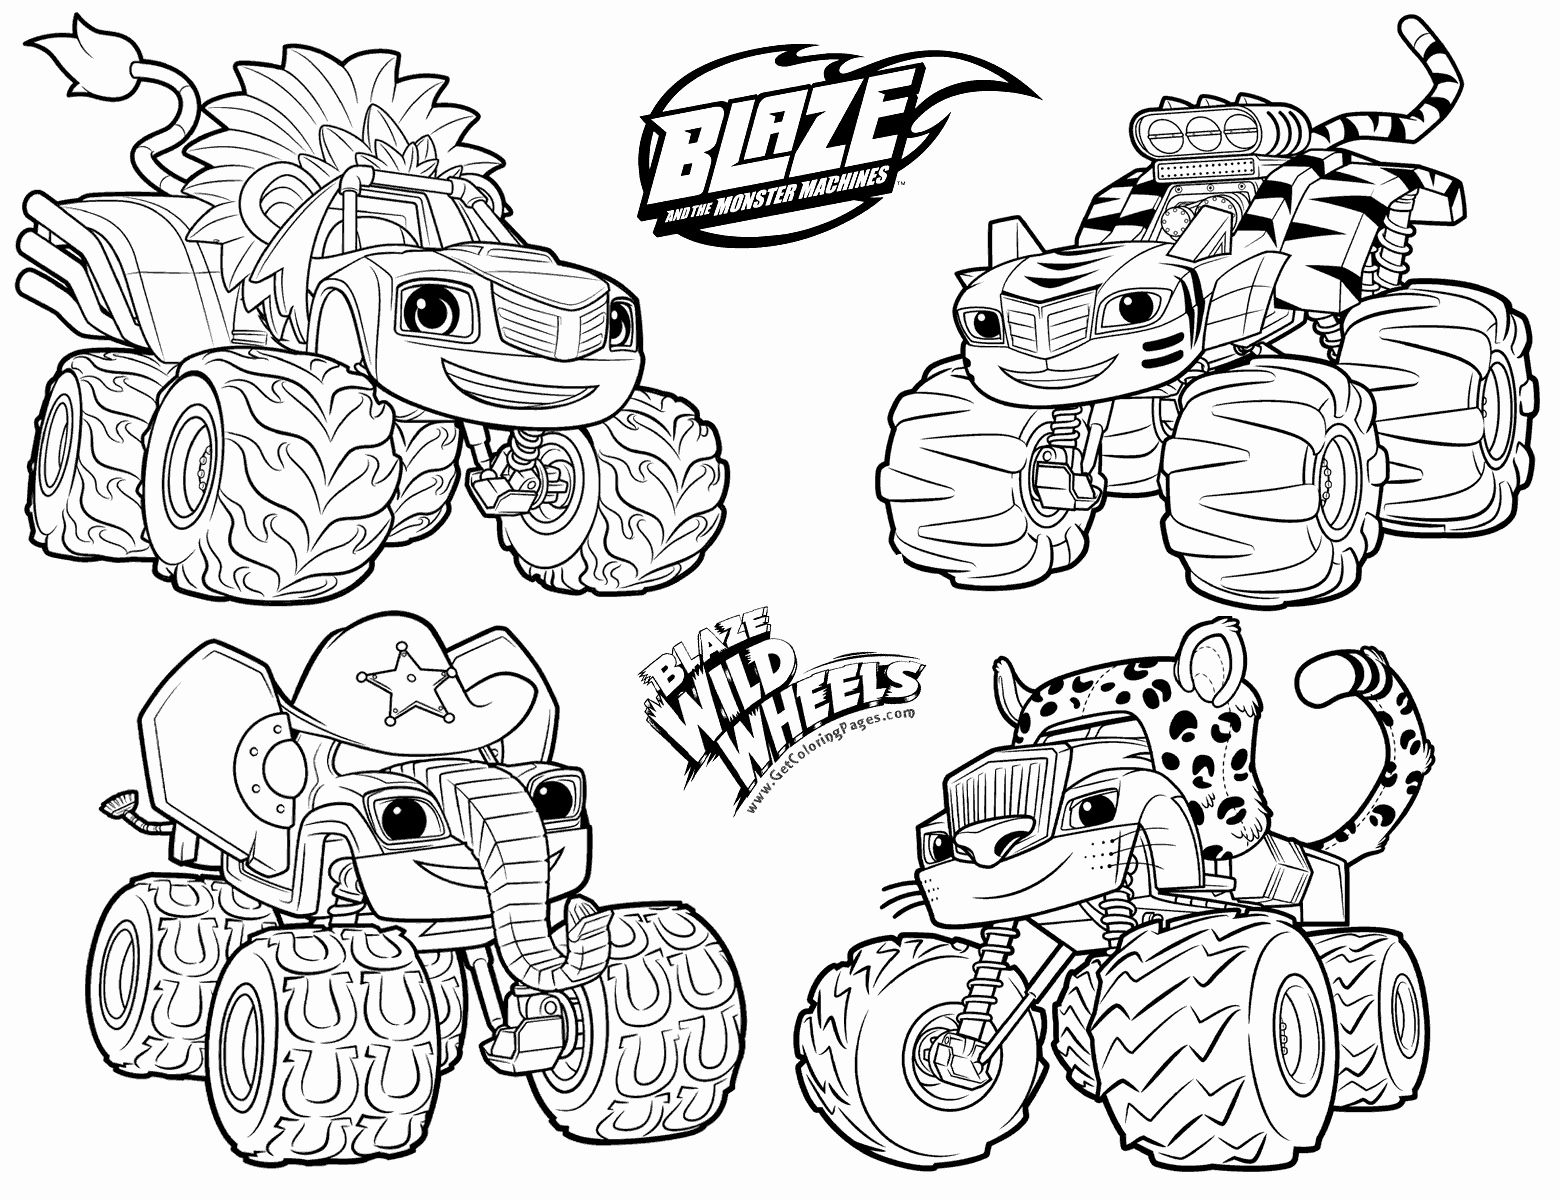 Blaze And The Monster Machines Coloring Page Best Of Blaze And The Monster Machines Coloring Pages Coloring Pages Unicorn Coloring Pages Tractor Coloring Pages